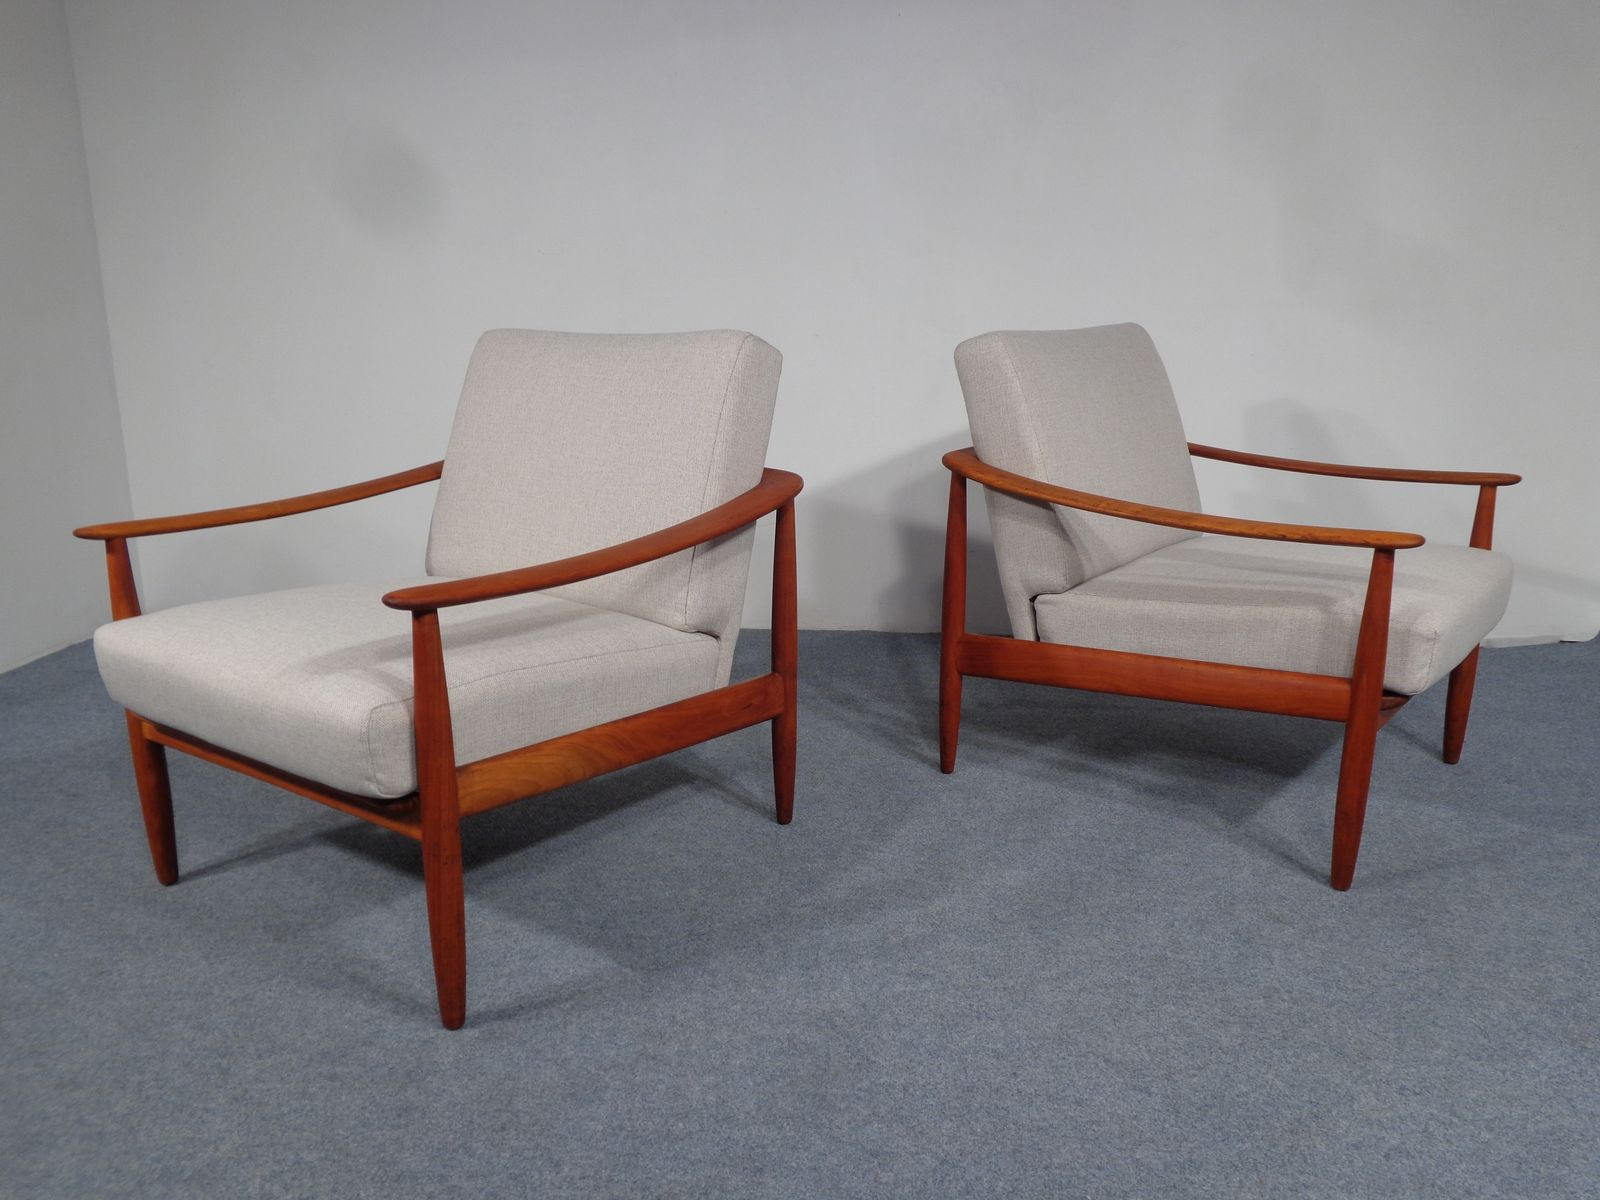 mid century kirschholz sessel von knoll 1950er 2er set bei pamono kaufen. Black Bedroom Furniture Sets. Home Design Ideas